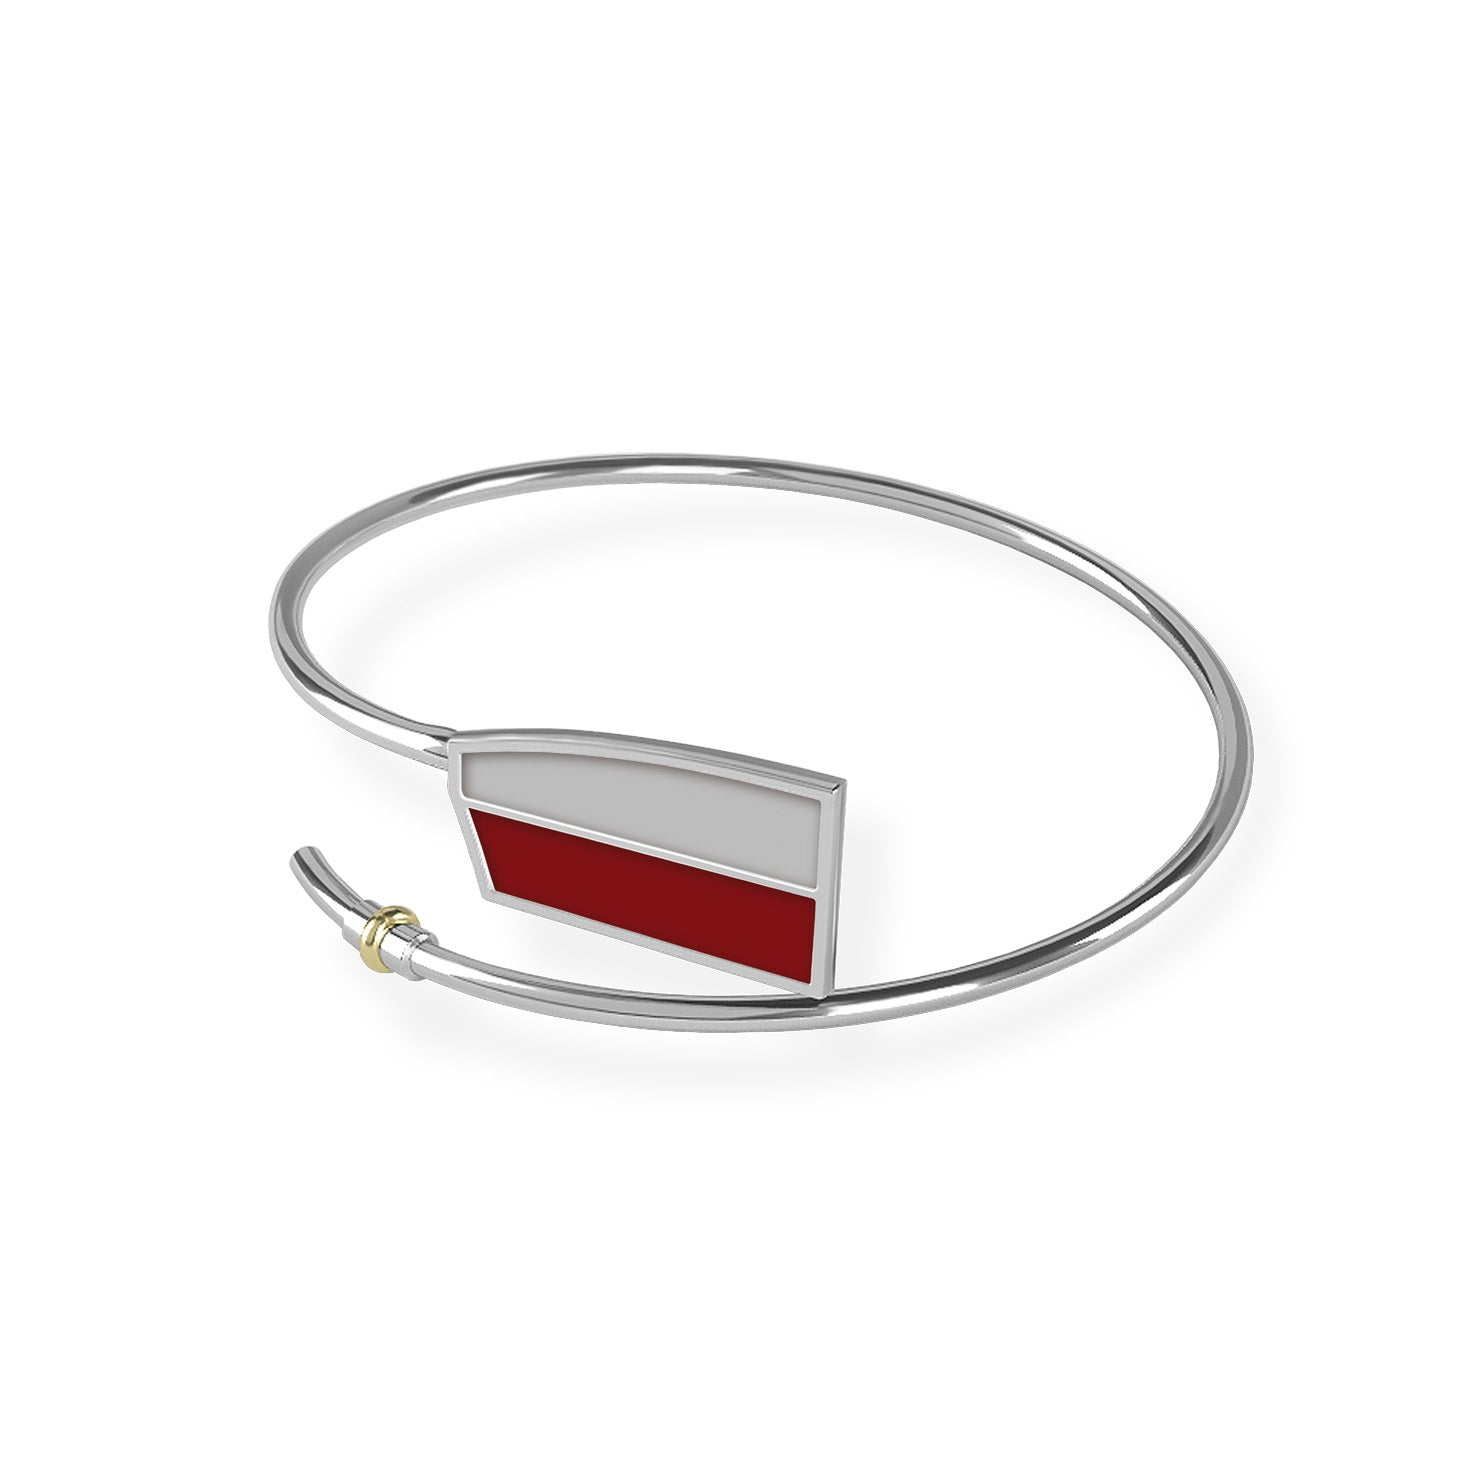 Vesper Bent Oar Bracelet - Strokeside Designs Rowing jewelry- Rowing Gifts Ideas- Rowing Coach Gifts